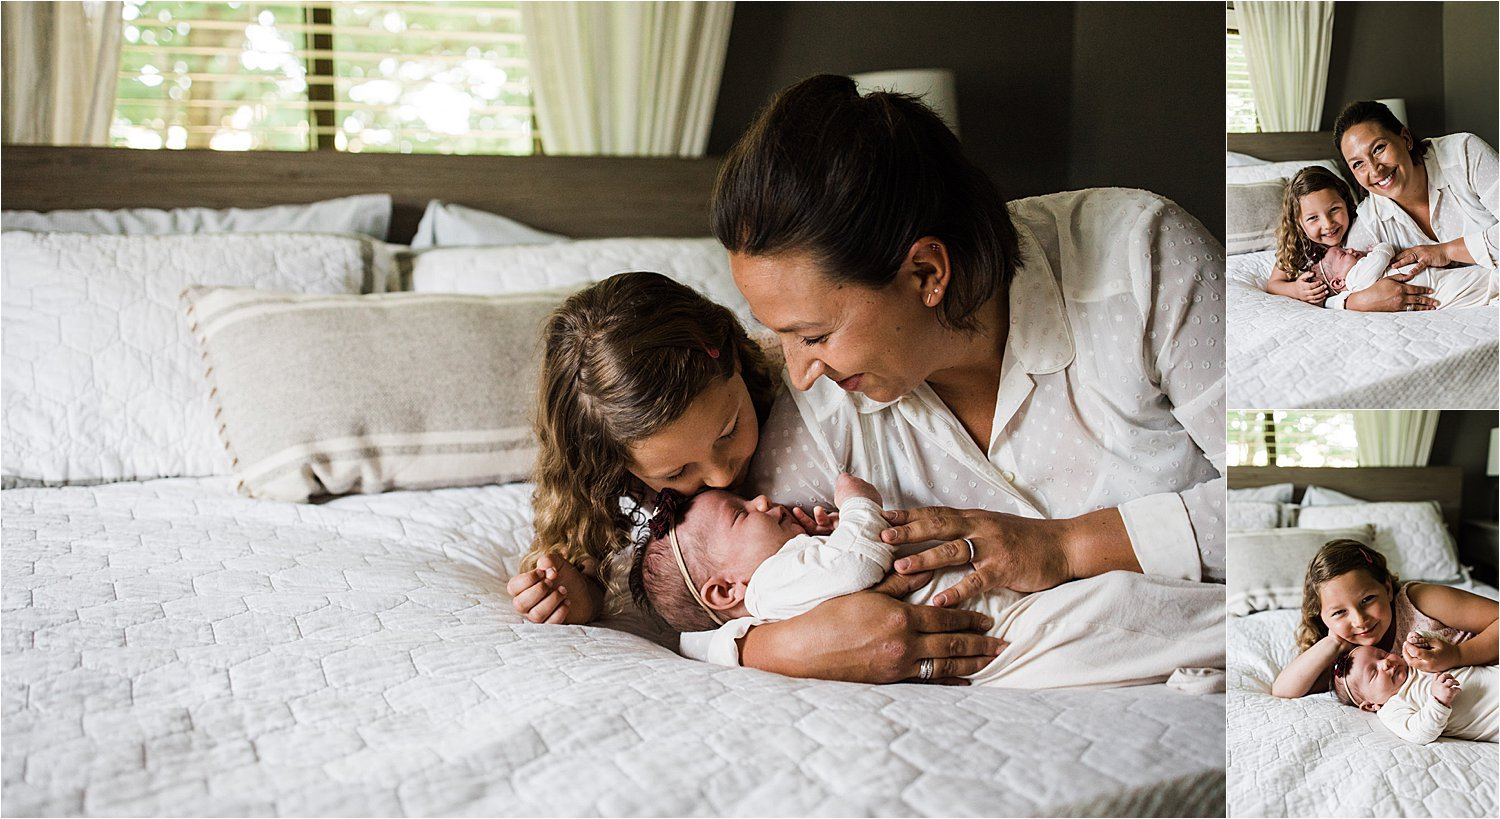 mom and daughter with newborn baby girl